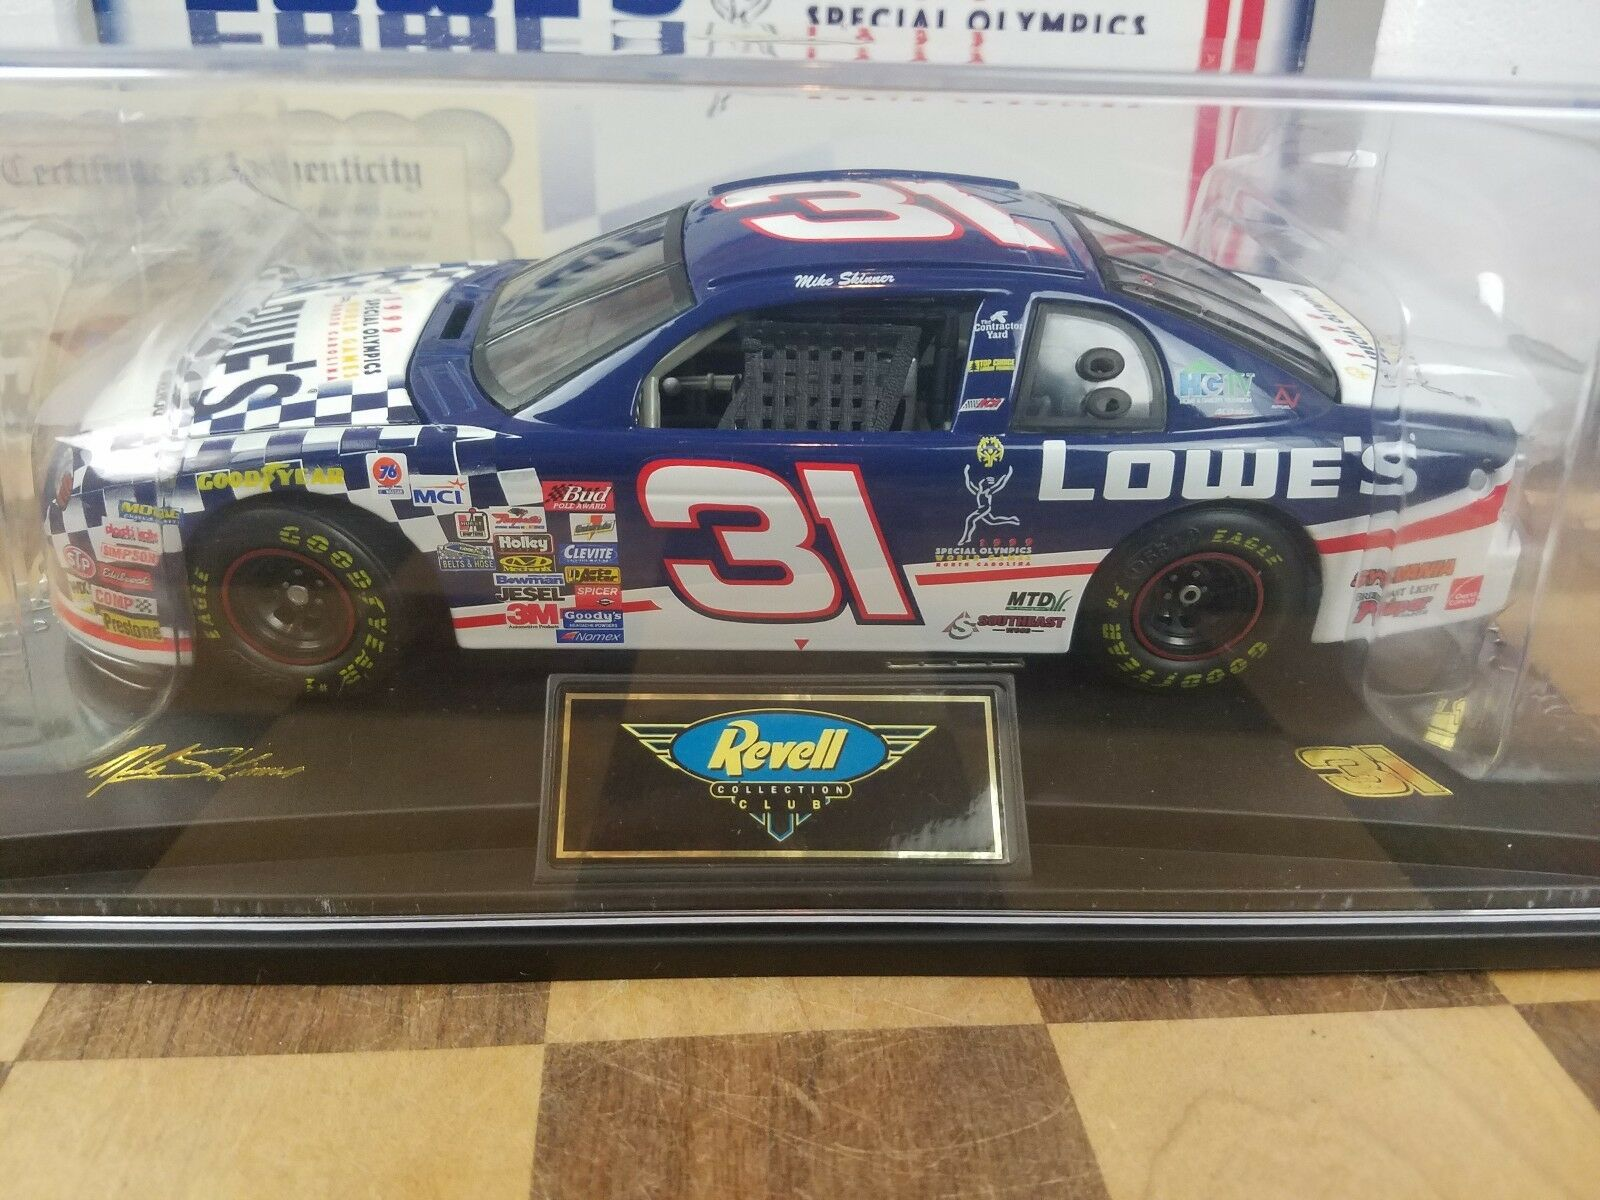 NEW Revell 1 24 Mike Skinner Lowe's Special Olympics 1998 Chevy 1 OF 1002